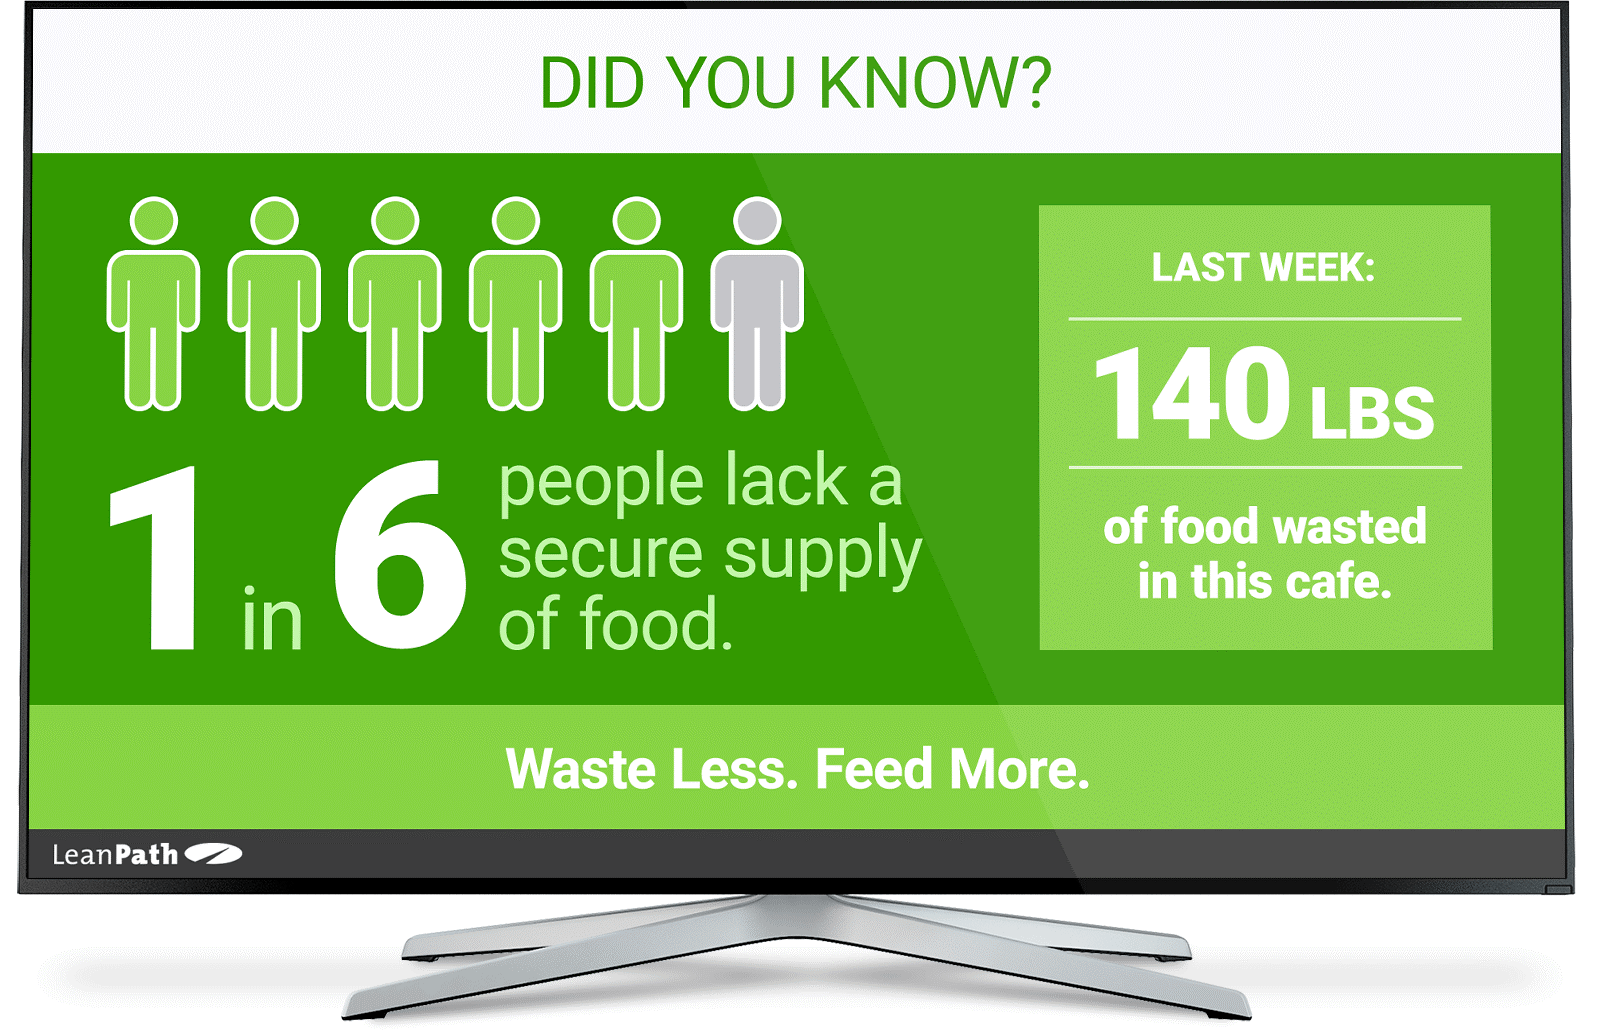 LeanPath Spark - Food Waste Digital Signage